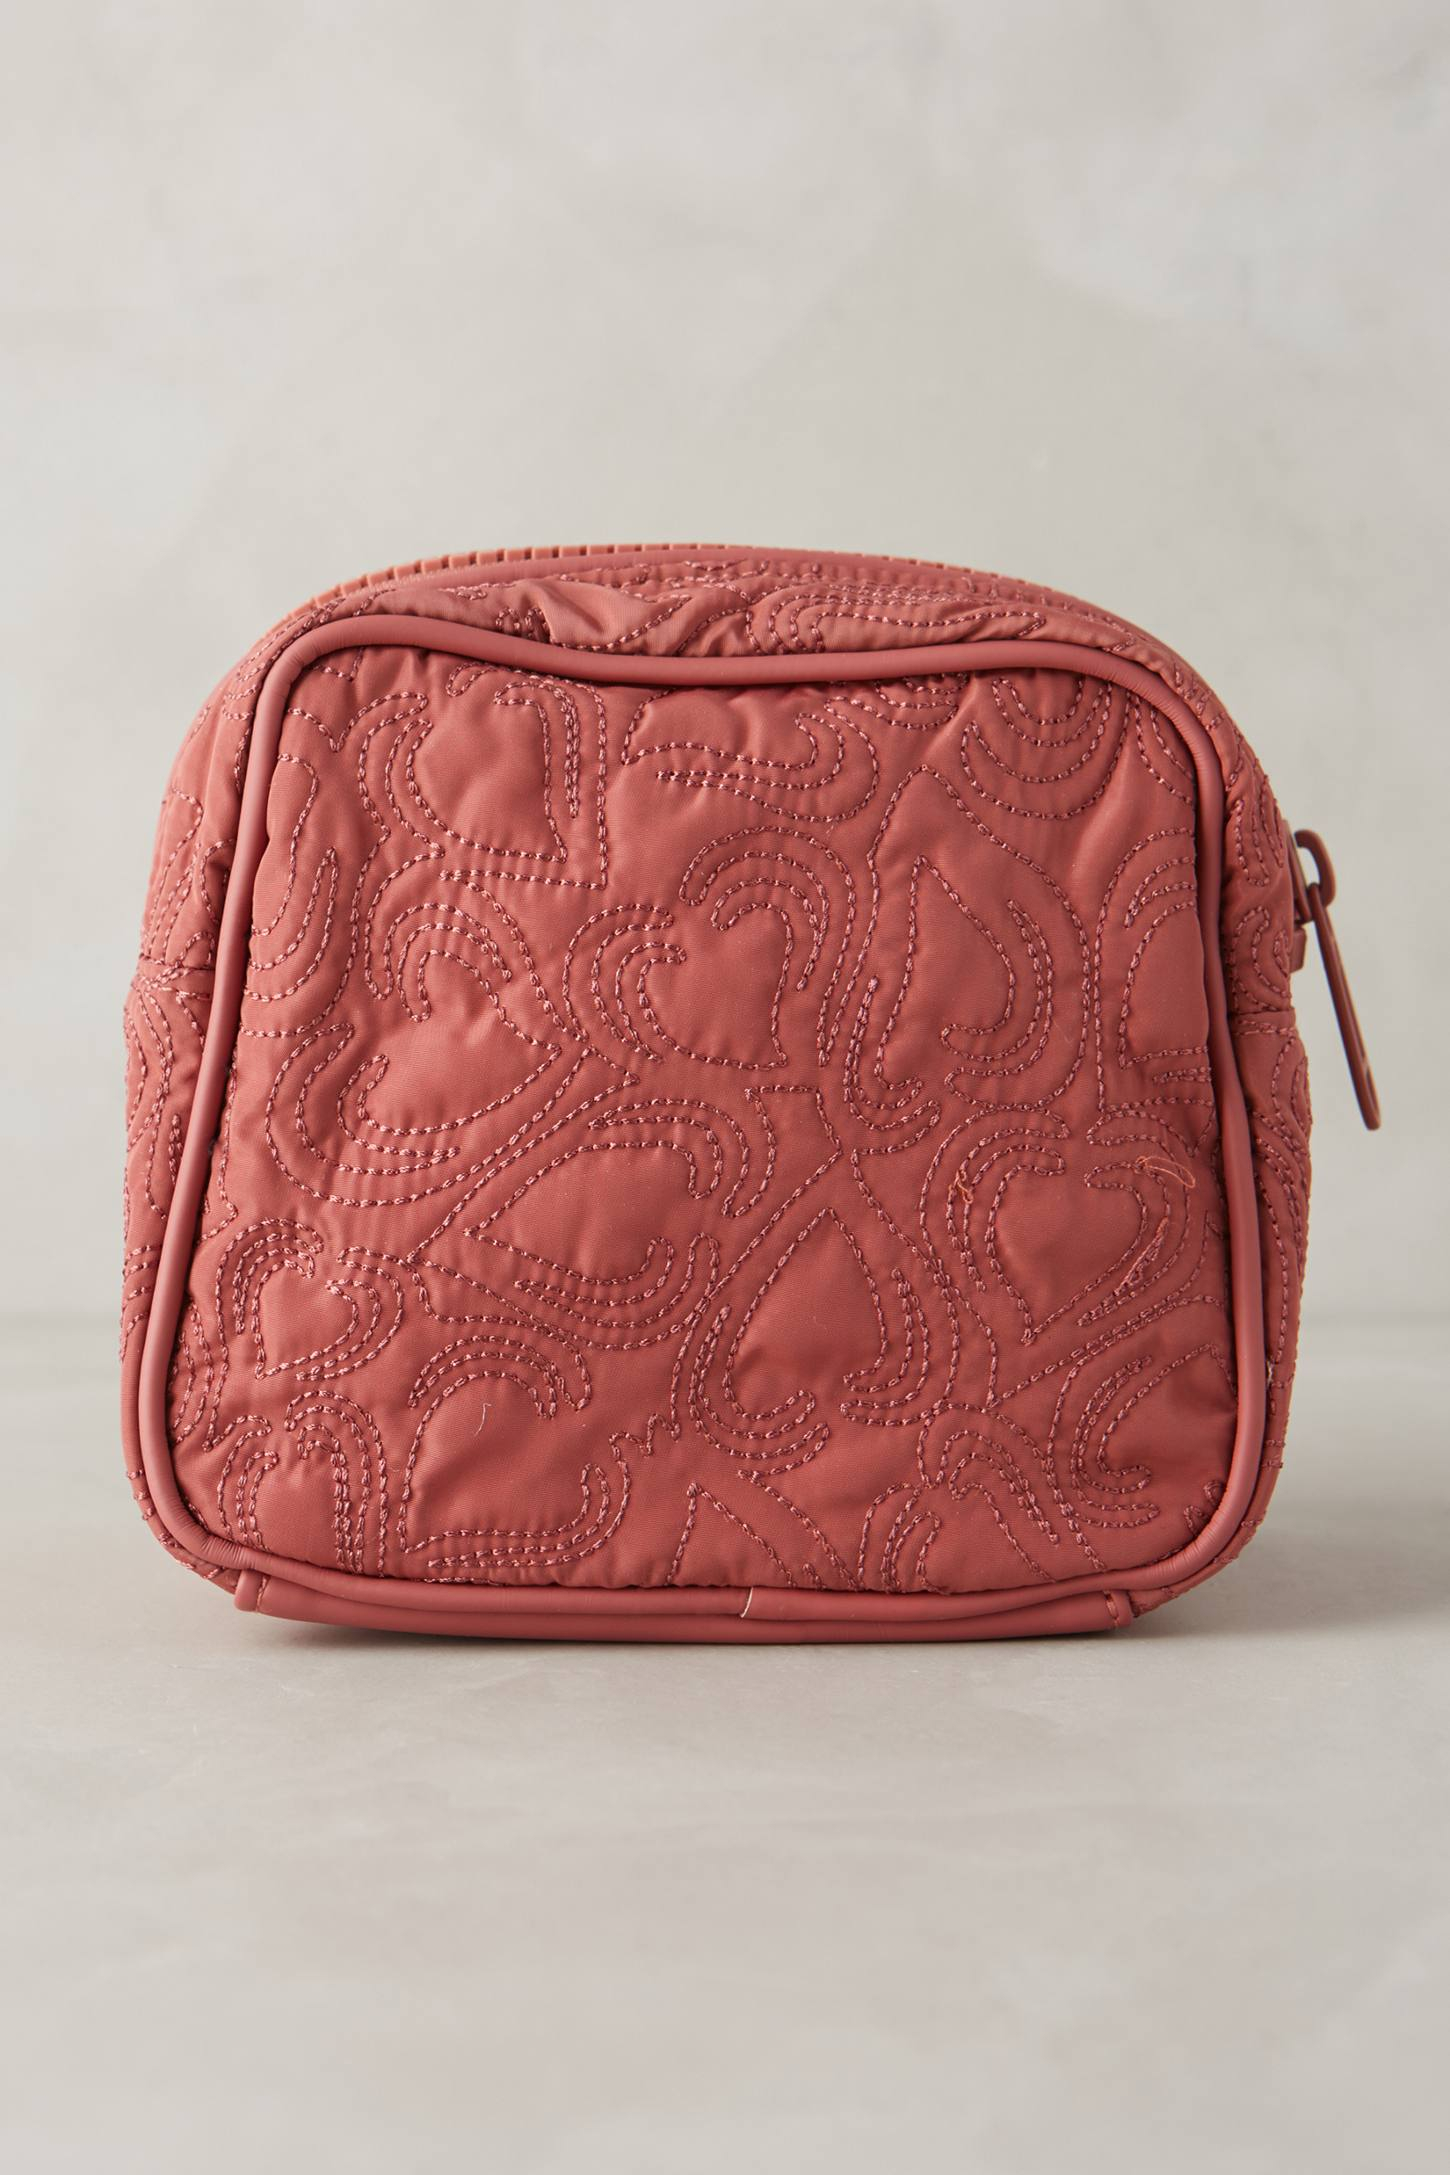 Adidas by stella mccartney Quilted Cosmetic Bag in Pink | Lyst : quilted cosmetic bags - Adamdwight.com